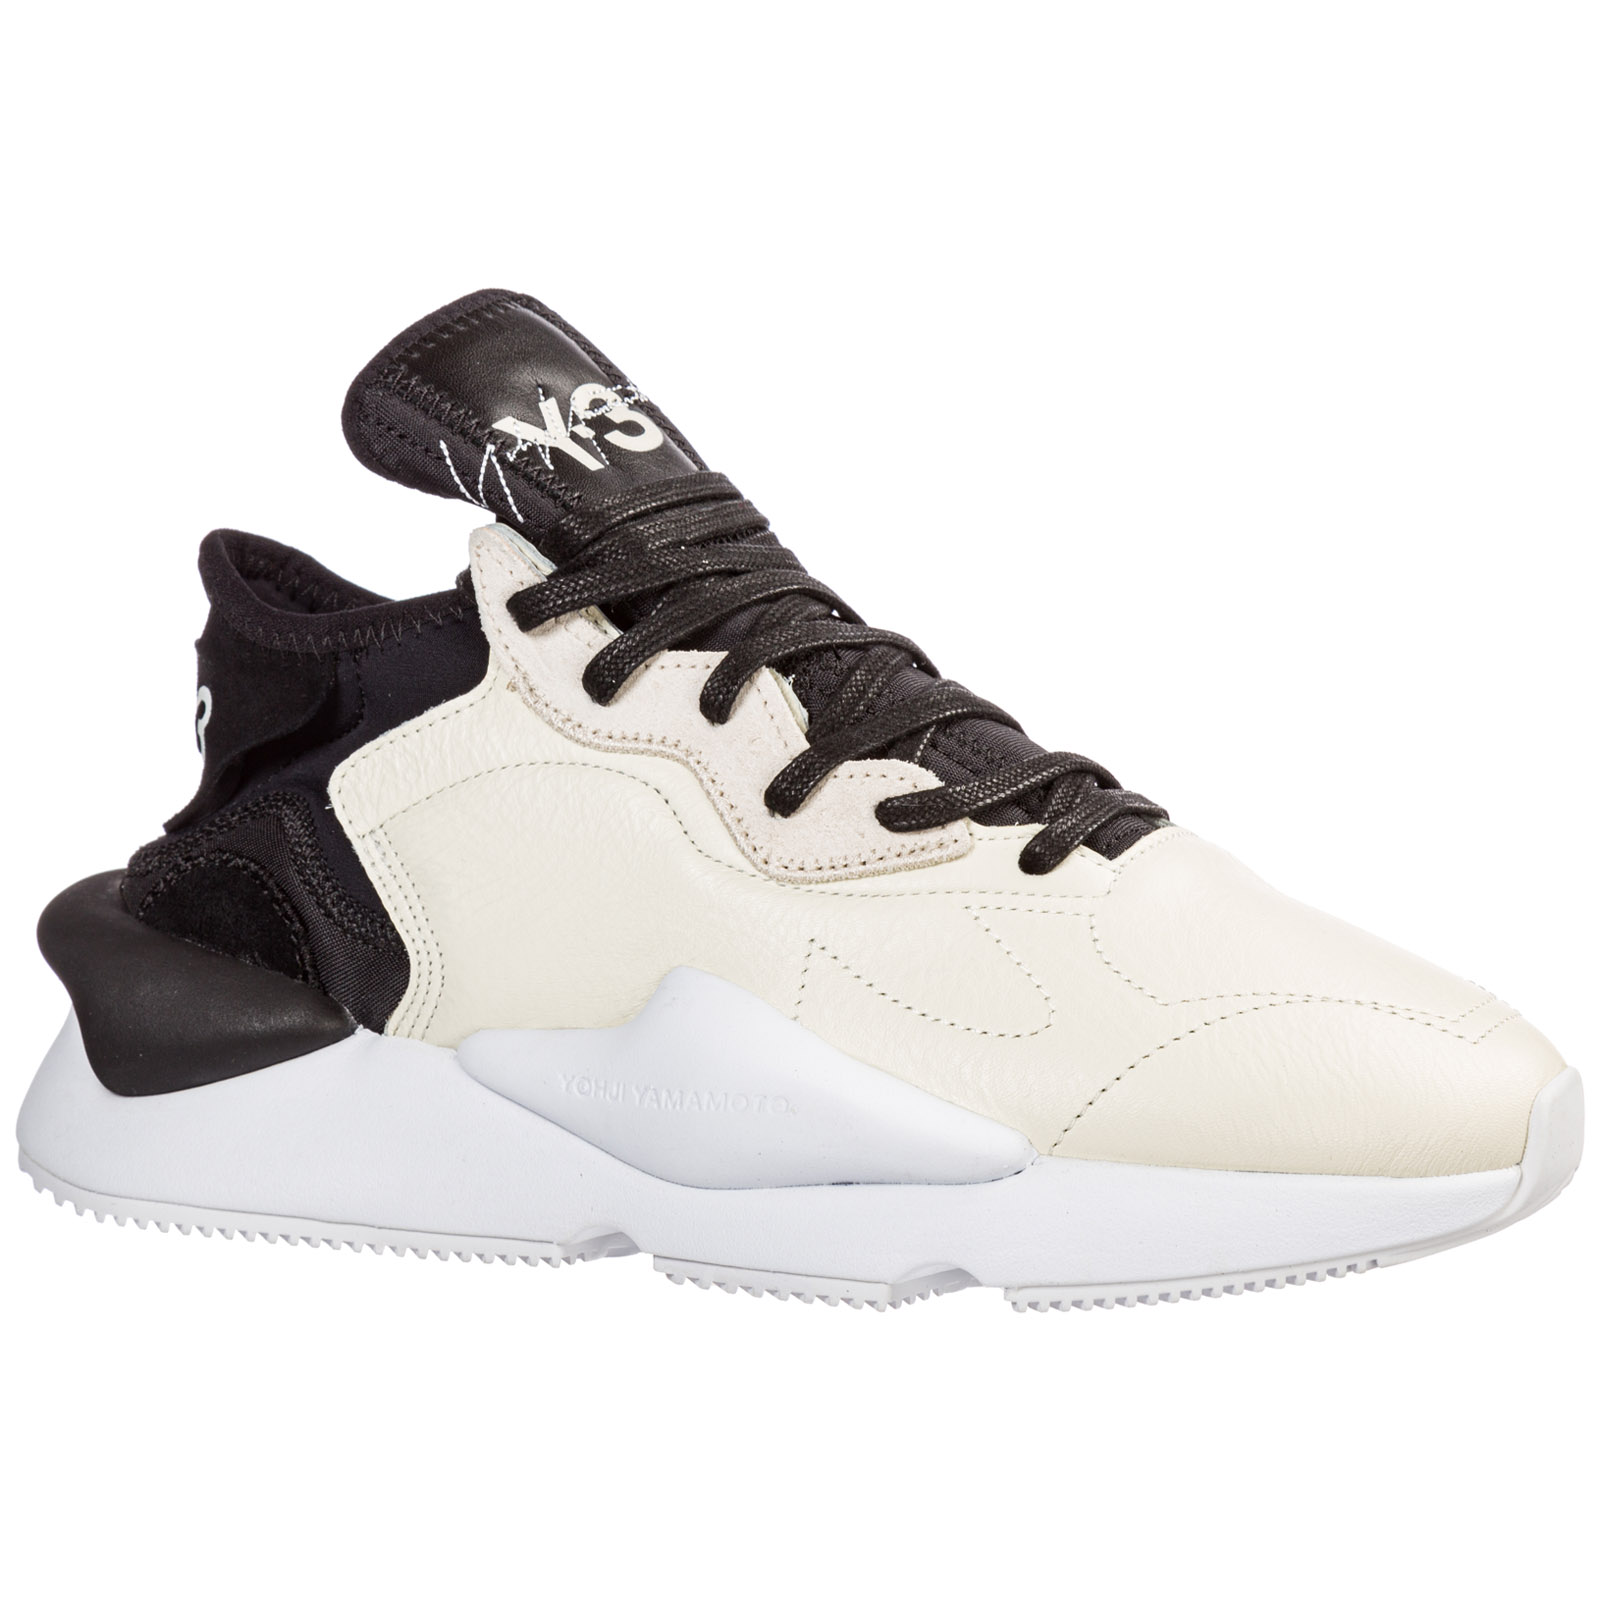 Homme Kaiwa Chaussures Sneakers Baskets kwnO0P